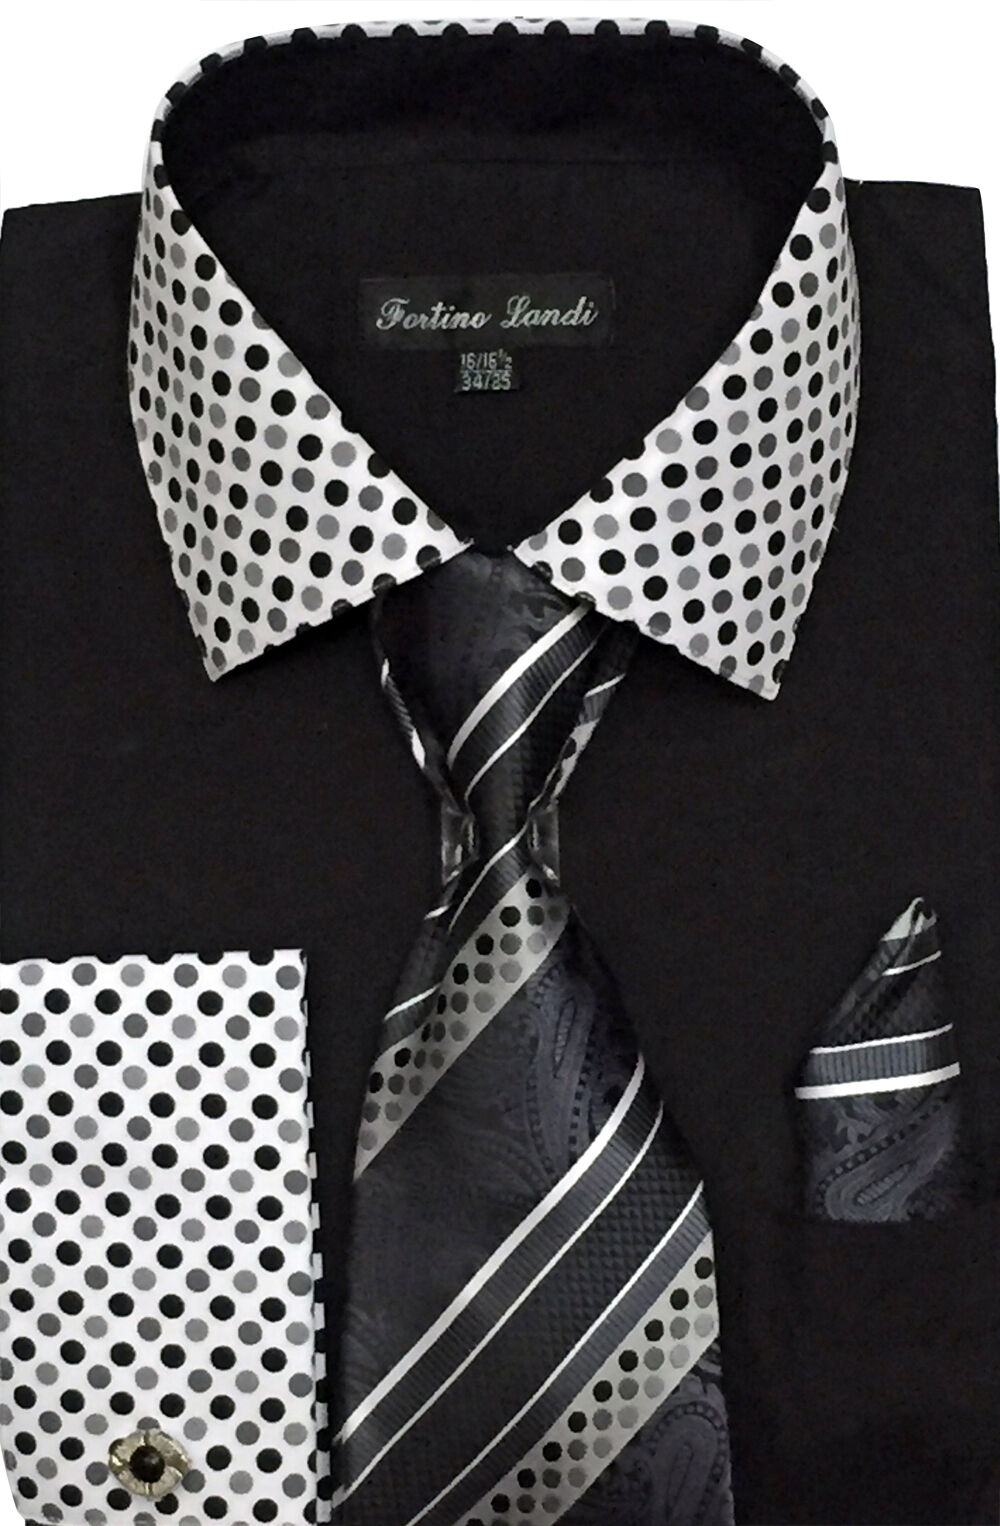 Fortino Landi Shirt FL630-Black - Church Suits For Less